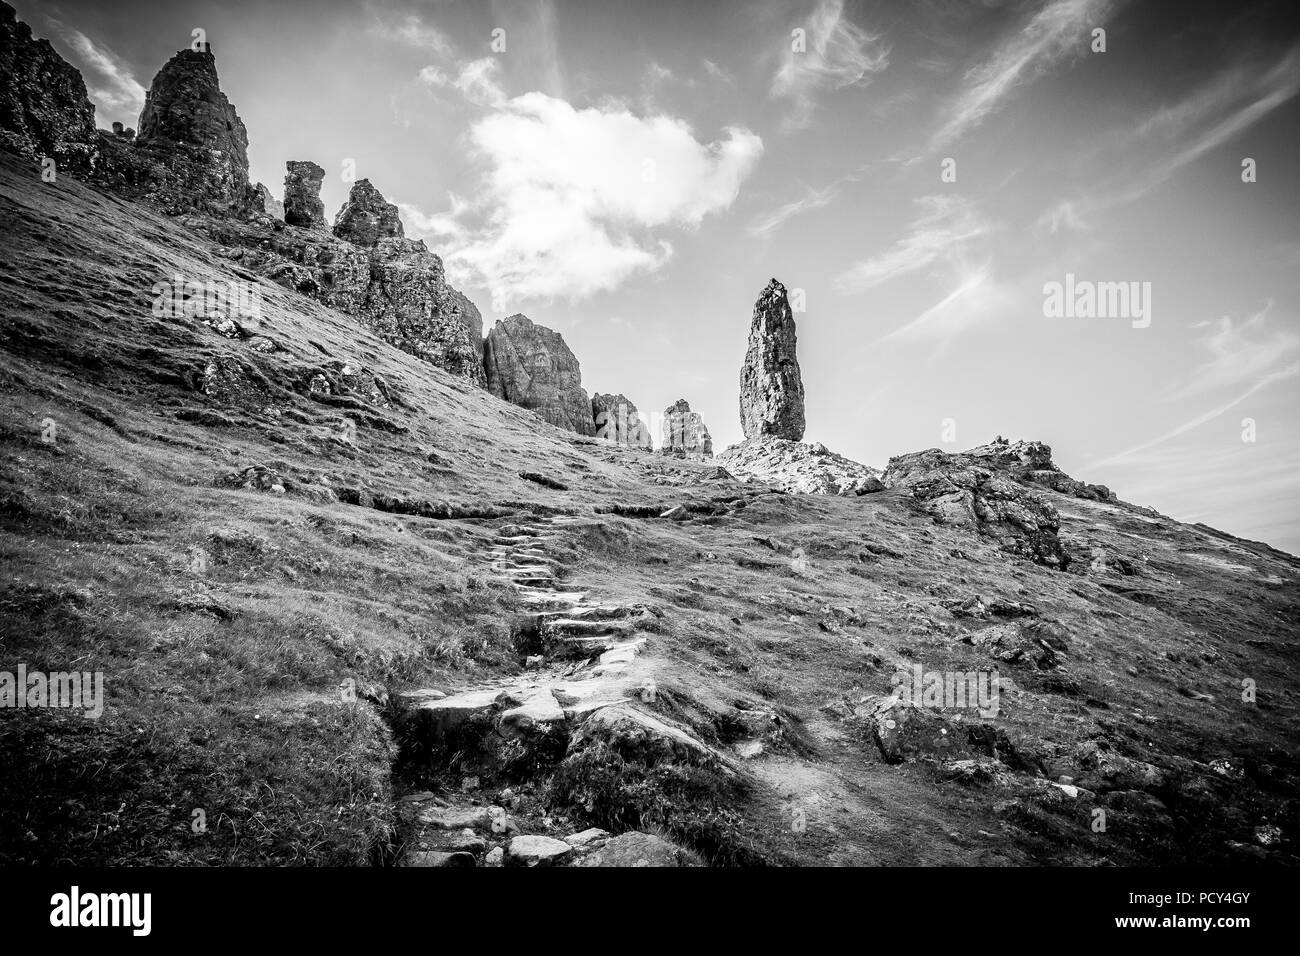 Walking around the dramatic landscape of the Old Man of Storr in Skye on a hot summers day. No one around, and peace and quiet. - Stock Image